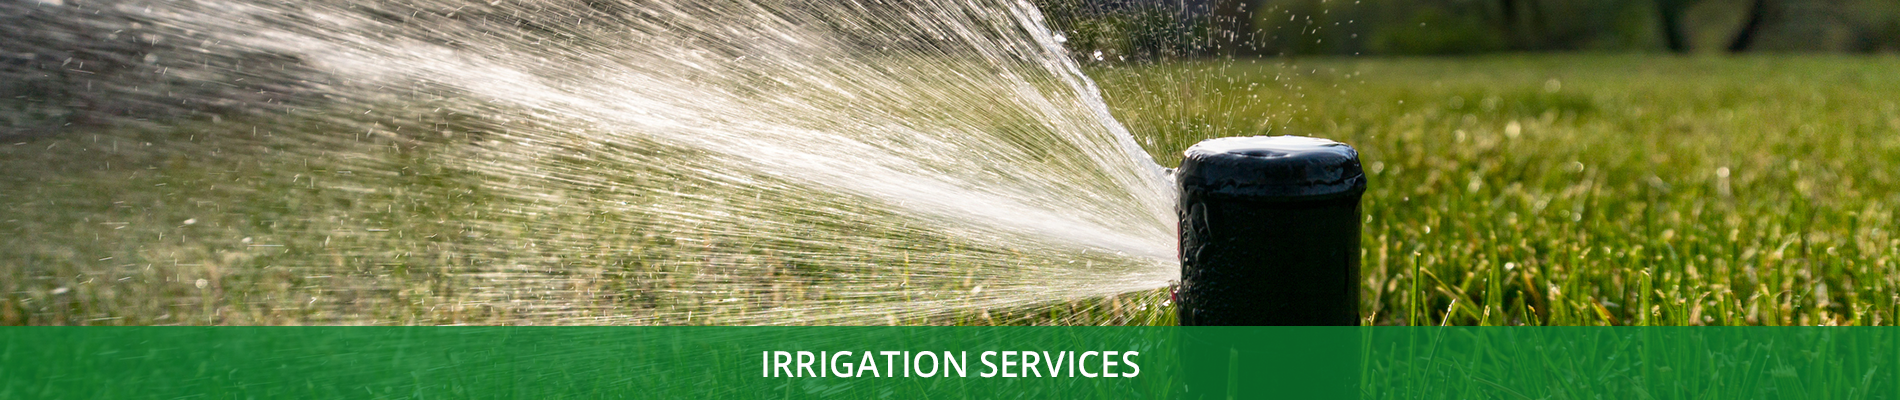 Irrigation-Services-Banner.png